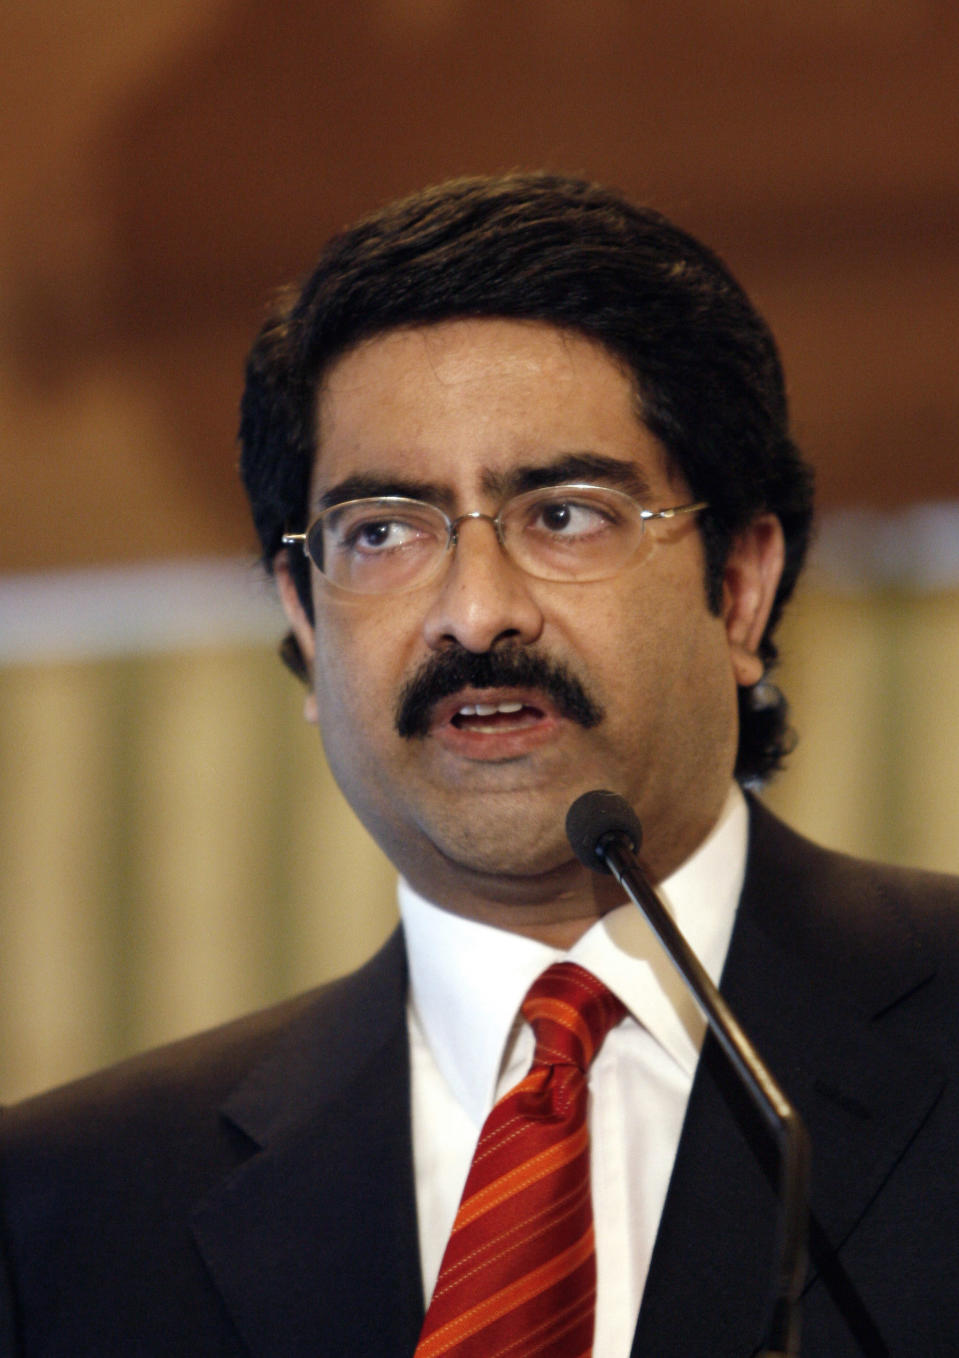 Kumar Birla is the fourth generation head of the storied, $48.3 billion (revenue) Aditya Birla Group. 2019 didn't particularly bring good cheer to the commodities King as he lost $3 bn with Vodafone-Idea's mounting debt taking a toll on his finances. Shares of his flagship firms that produce chemicals, metals and cement have also tumbled amid a demand slump, depleting his wealth. Vodafone Idea's troubles deepened after the Supreme Court sided with the government's demand for $4 billion in fee-arrears from prior years.